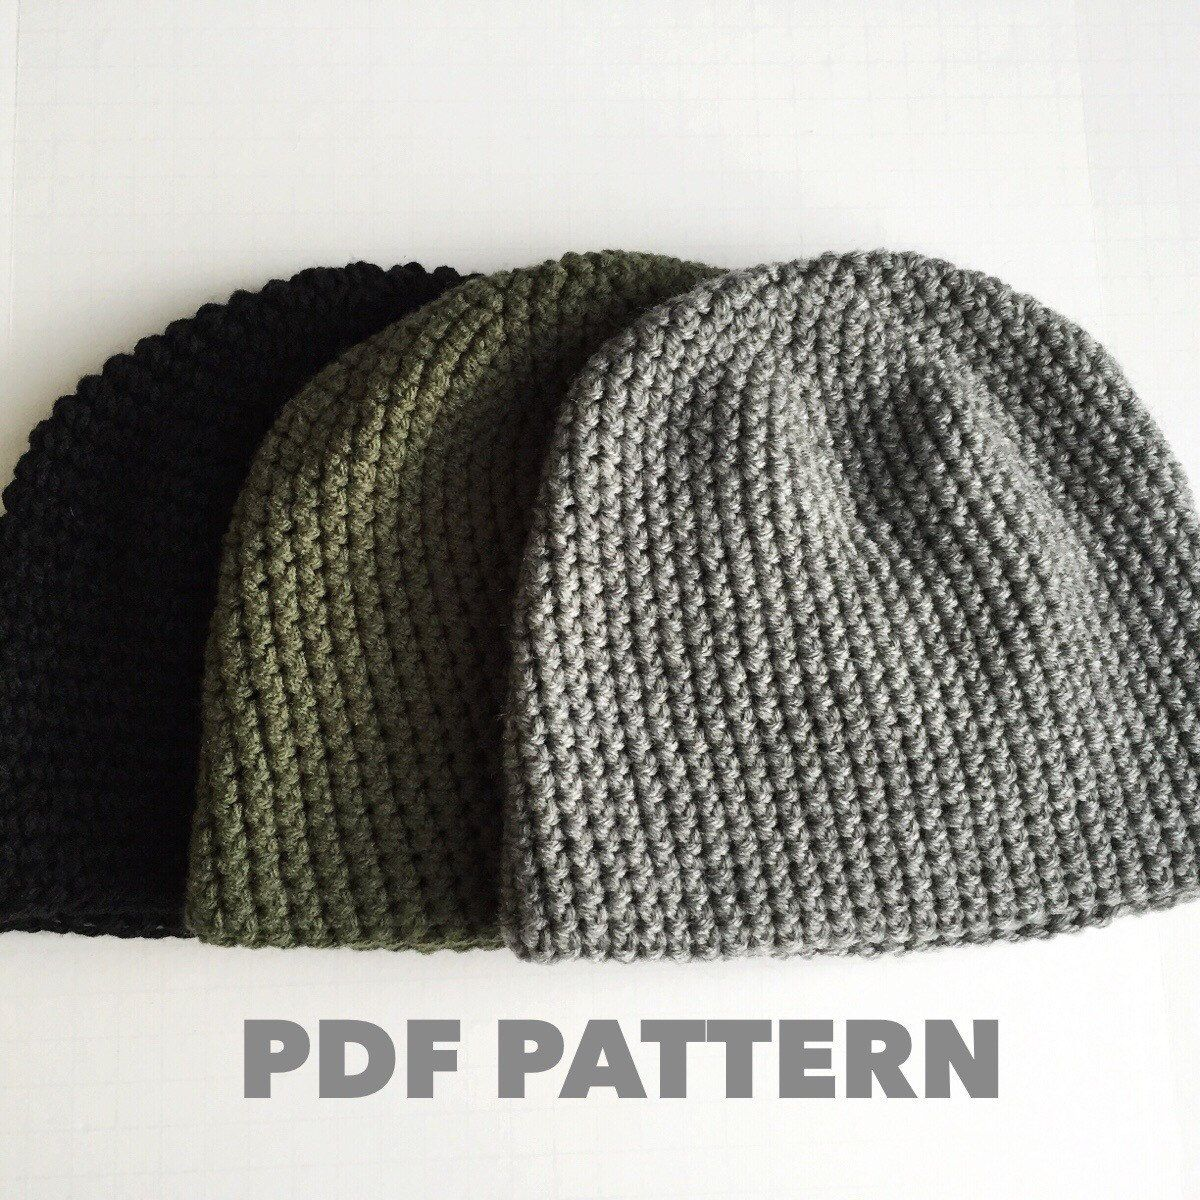 Pattern mens easy hat crochet beanie seamless simple basic classic pattern mens easy hat crochet beanie seamless simple basic classic crochet hat bankloansurffo Image collections